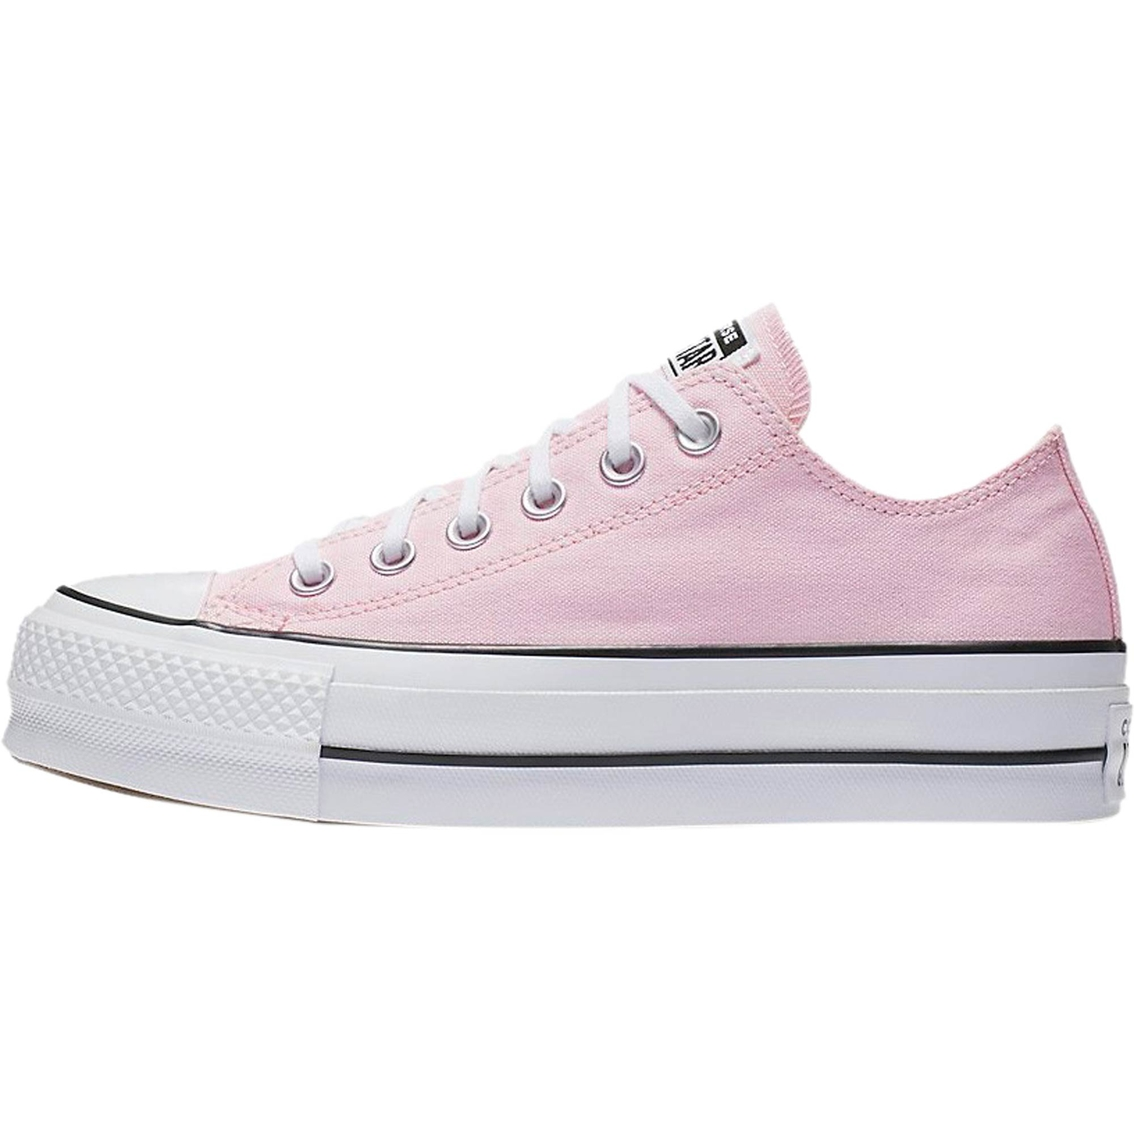 026c5780ab4f Converse Women s Chuck Taylor All Star Lift Ox Sneakers